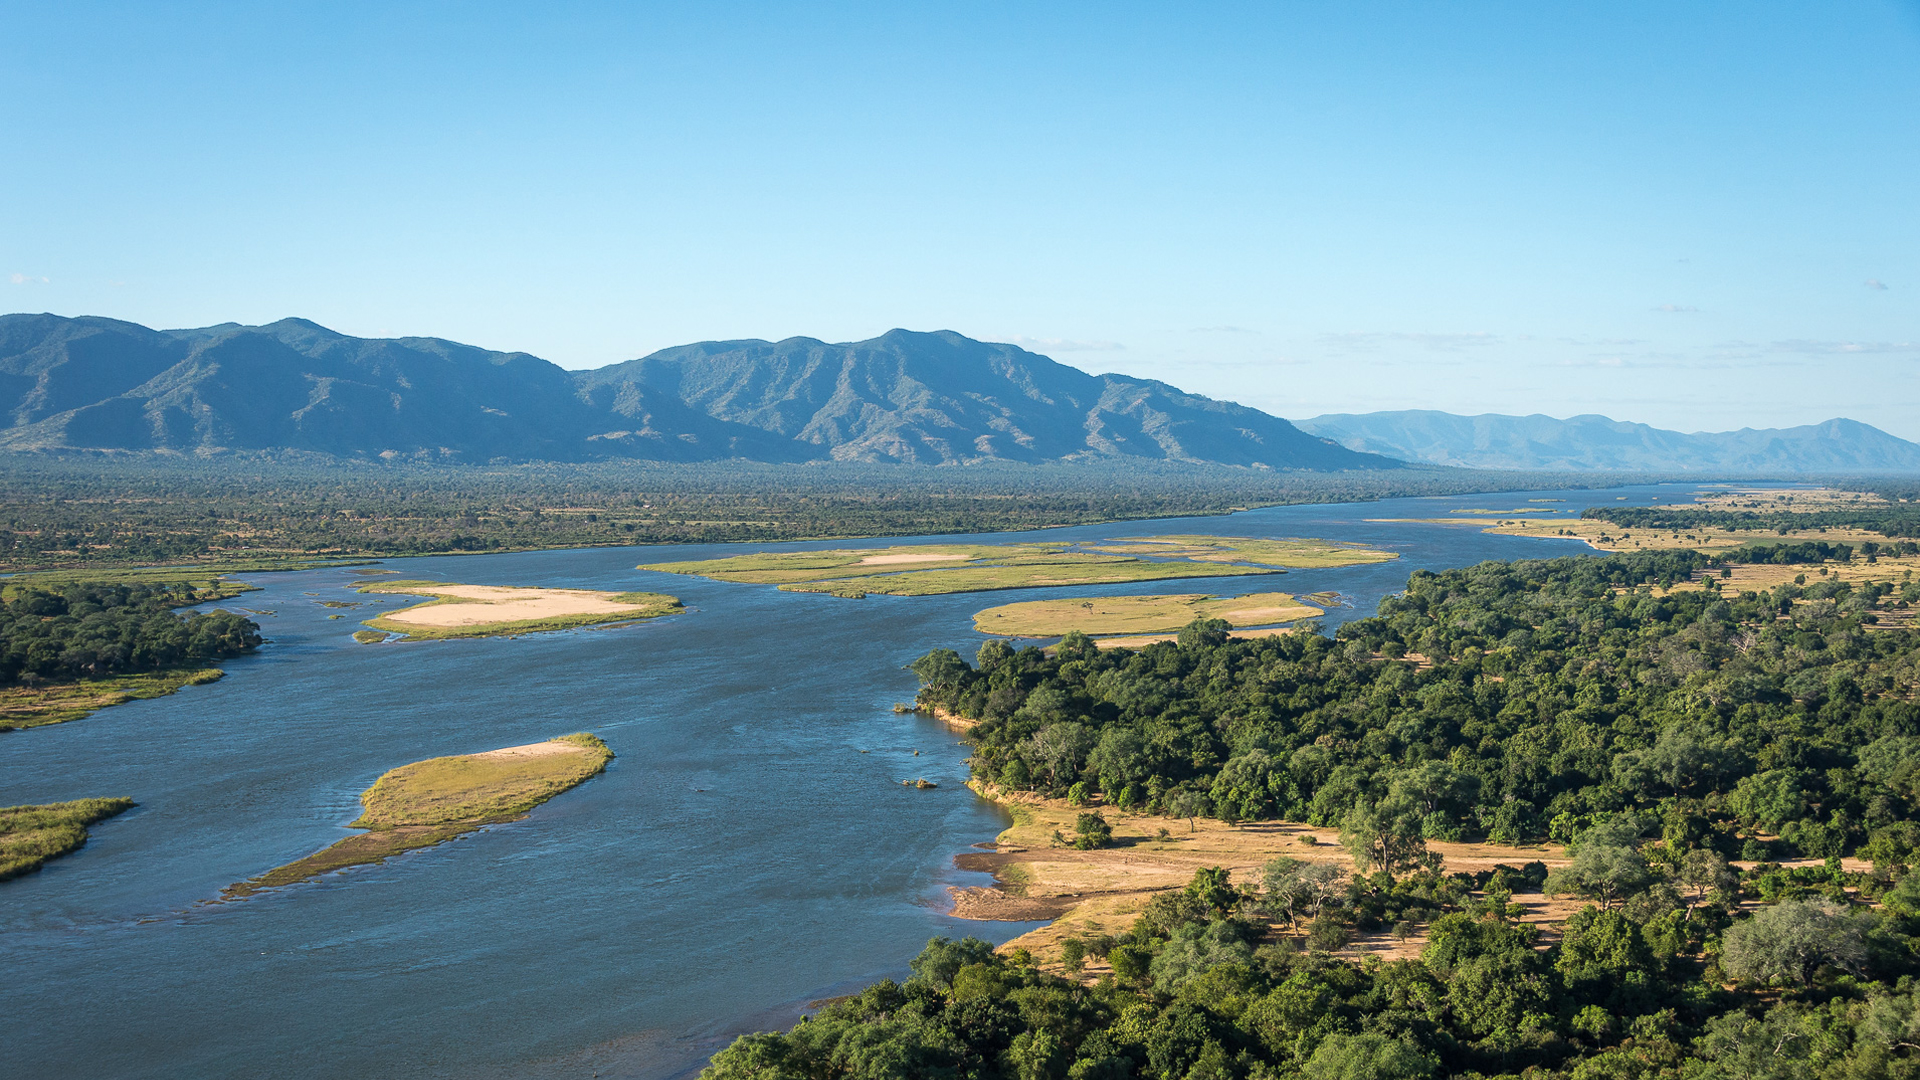 zimbabwe regions mana pools aerial view